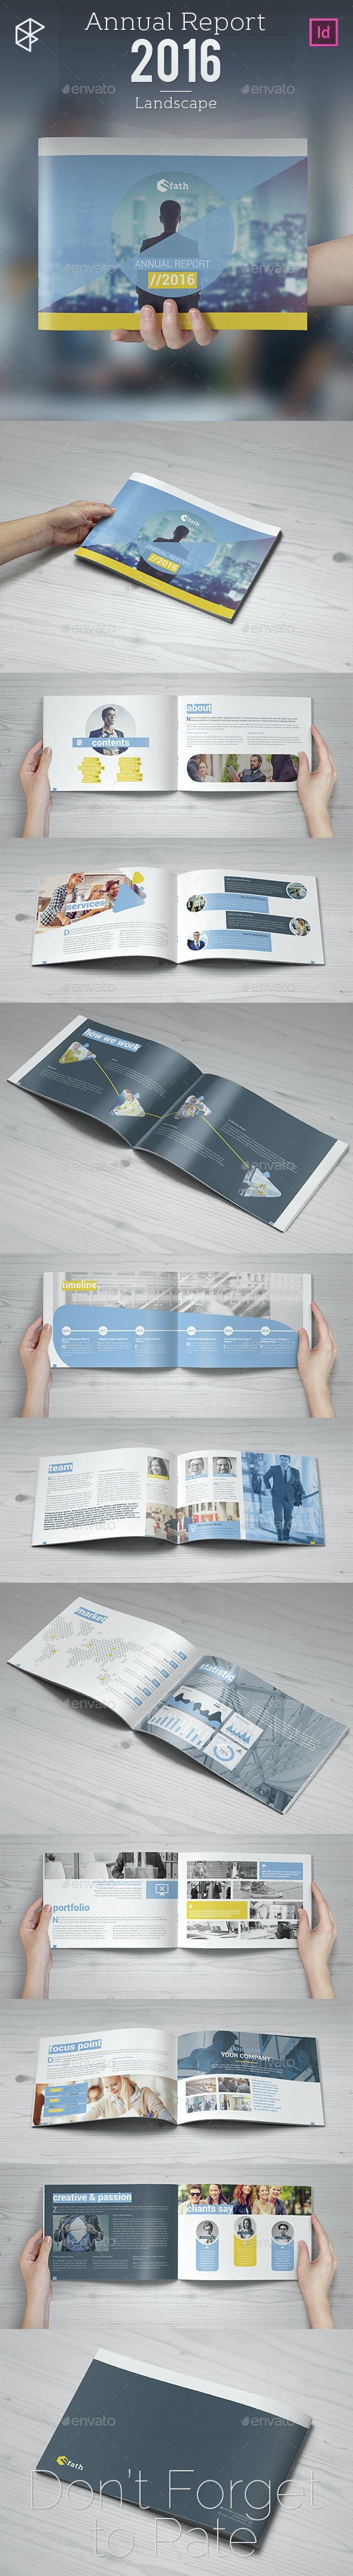 Annual Report 2016 - Landscape - Corporate Brochures